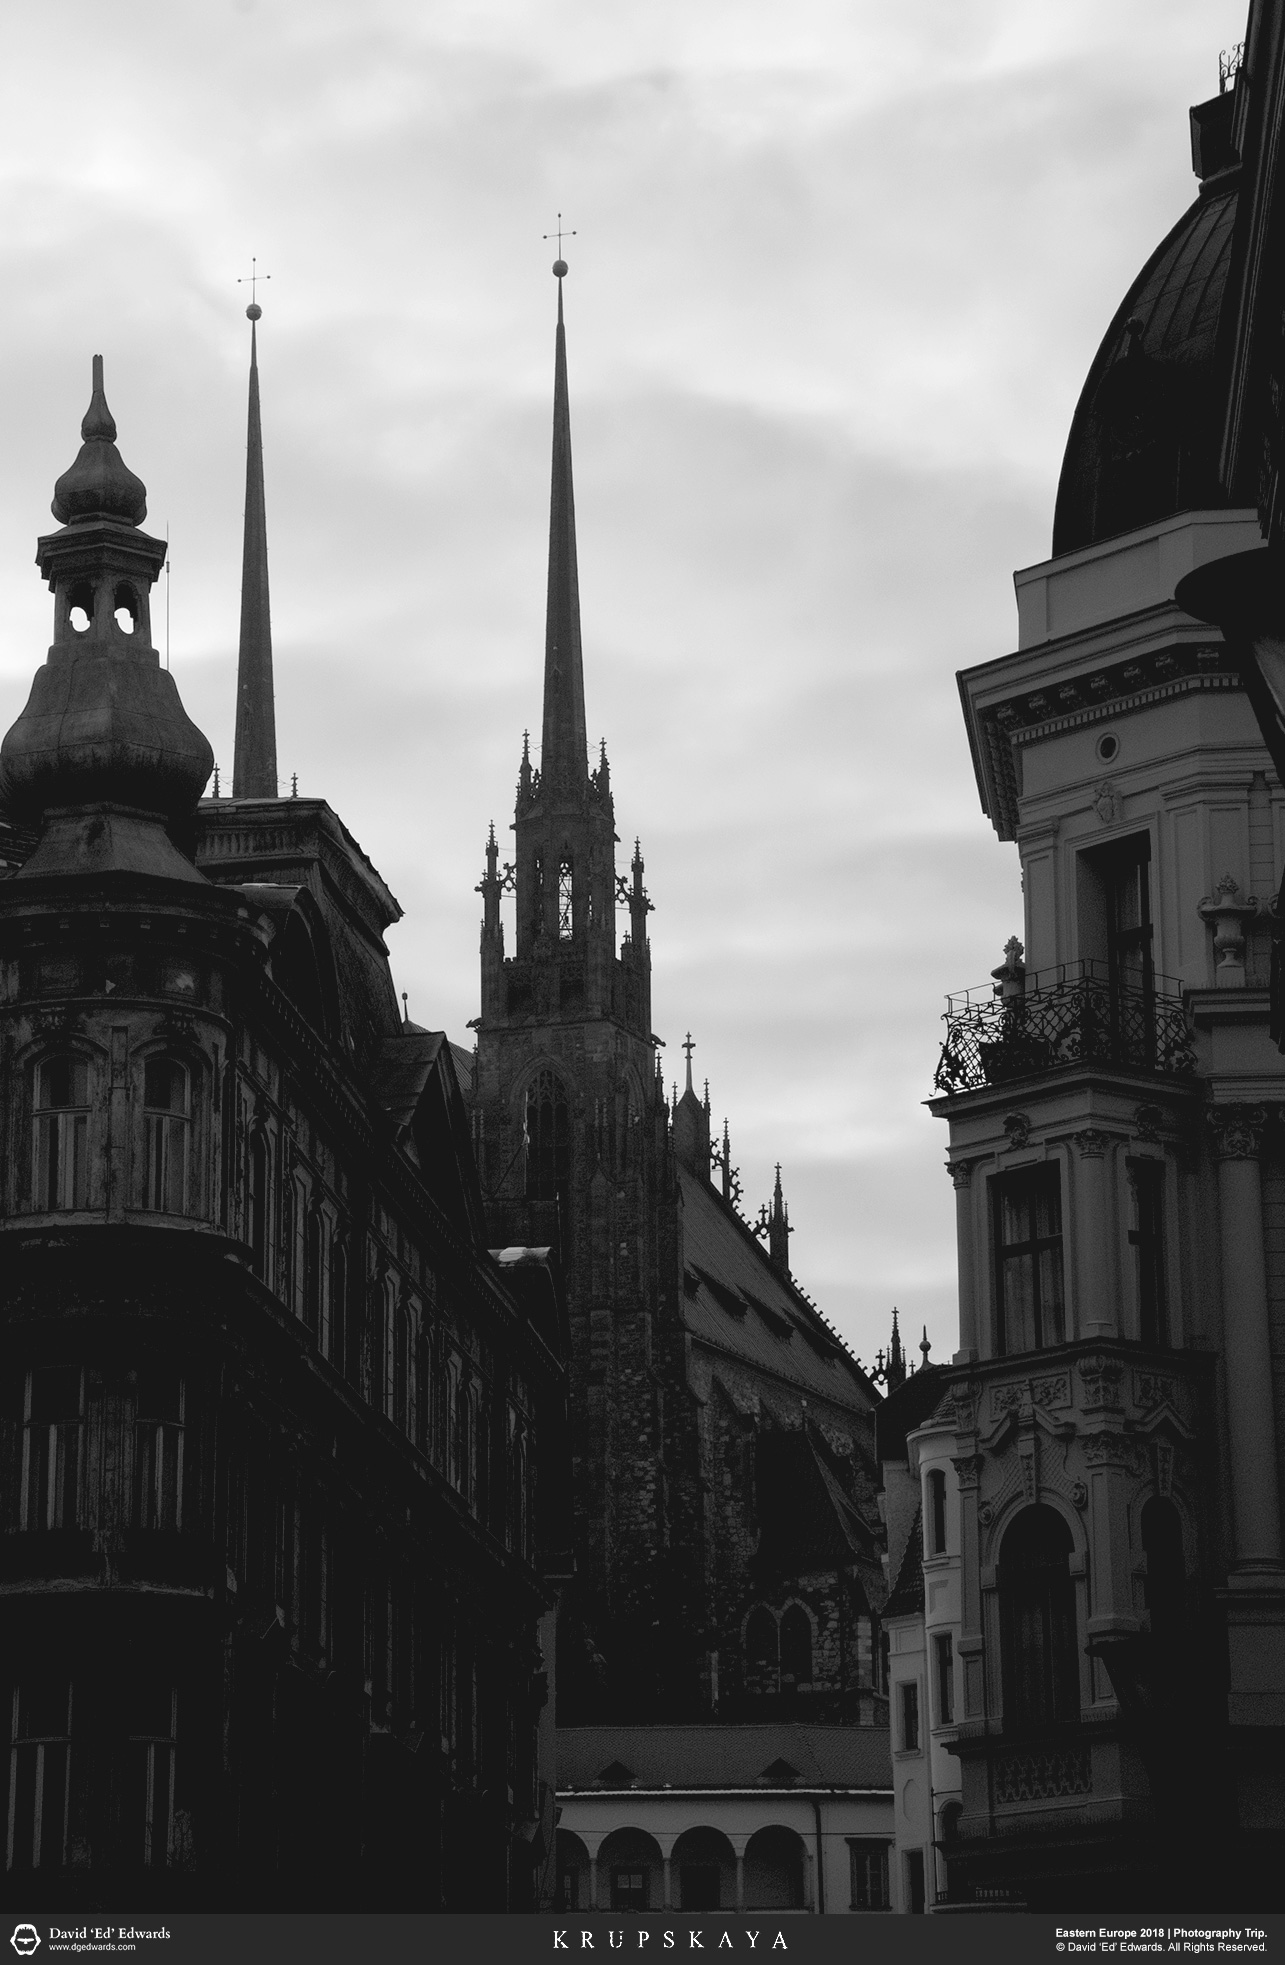 Architecture, Eastern Europe